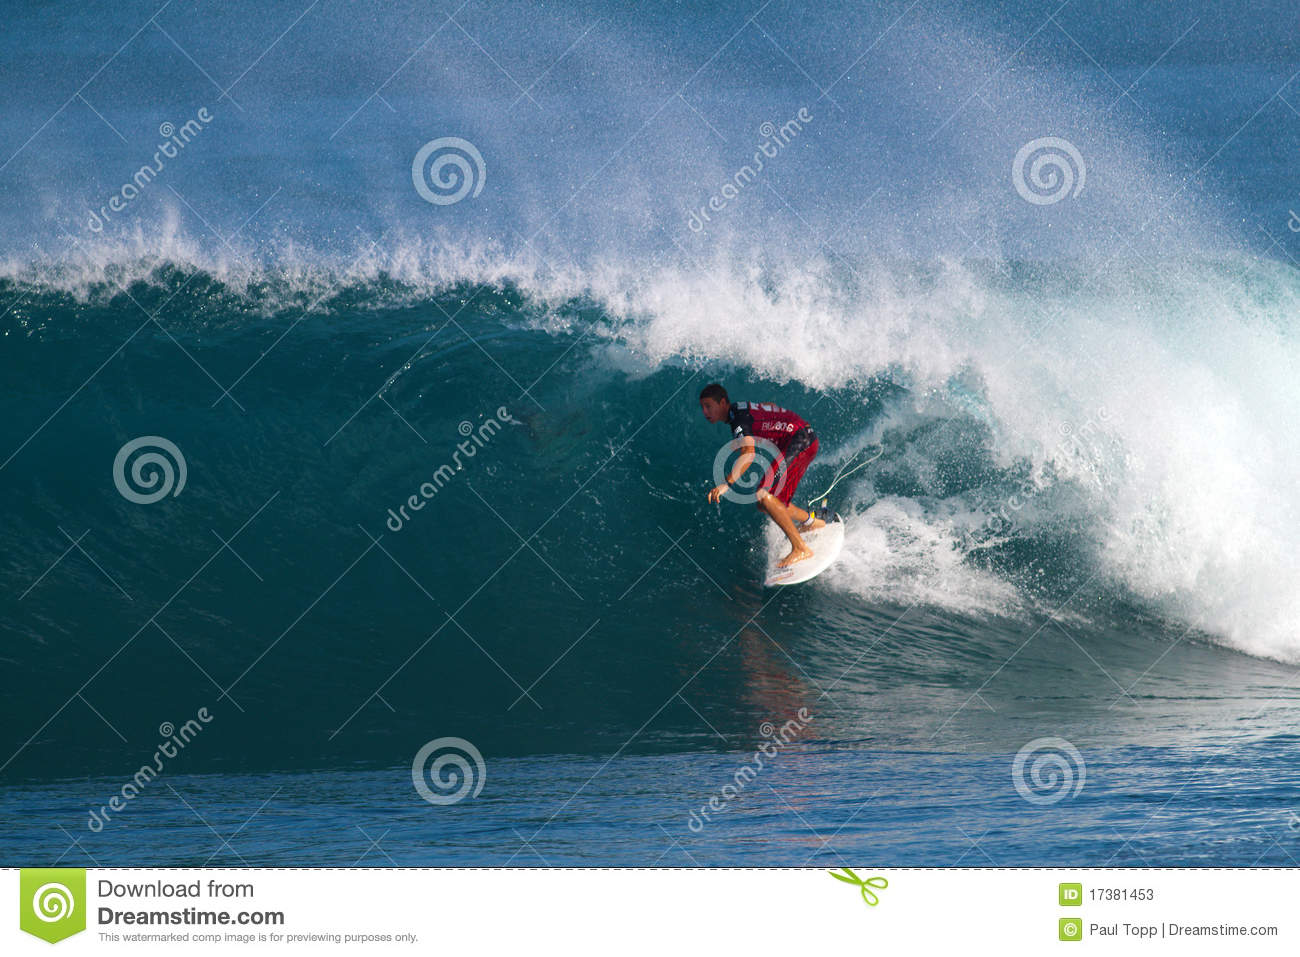 Surfer Ian Walsh Surfing in the Pipeline Masters